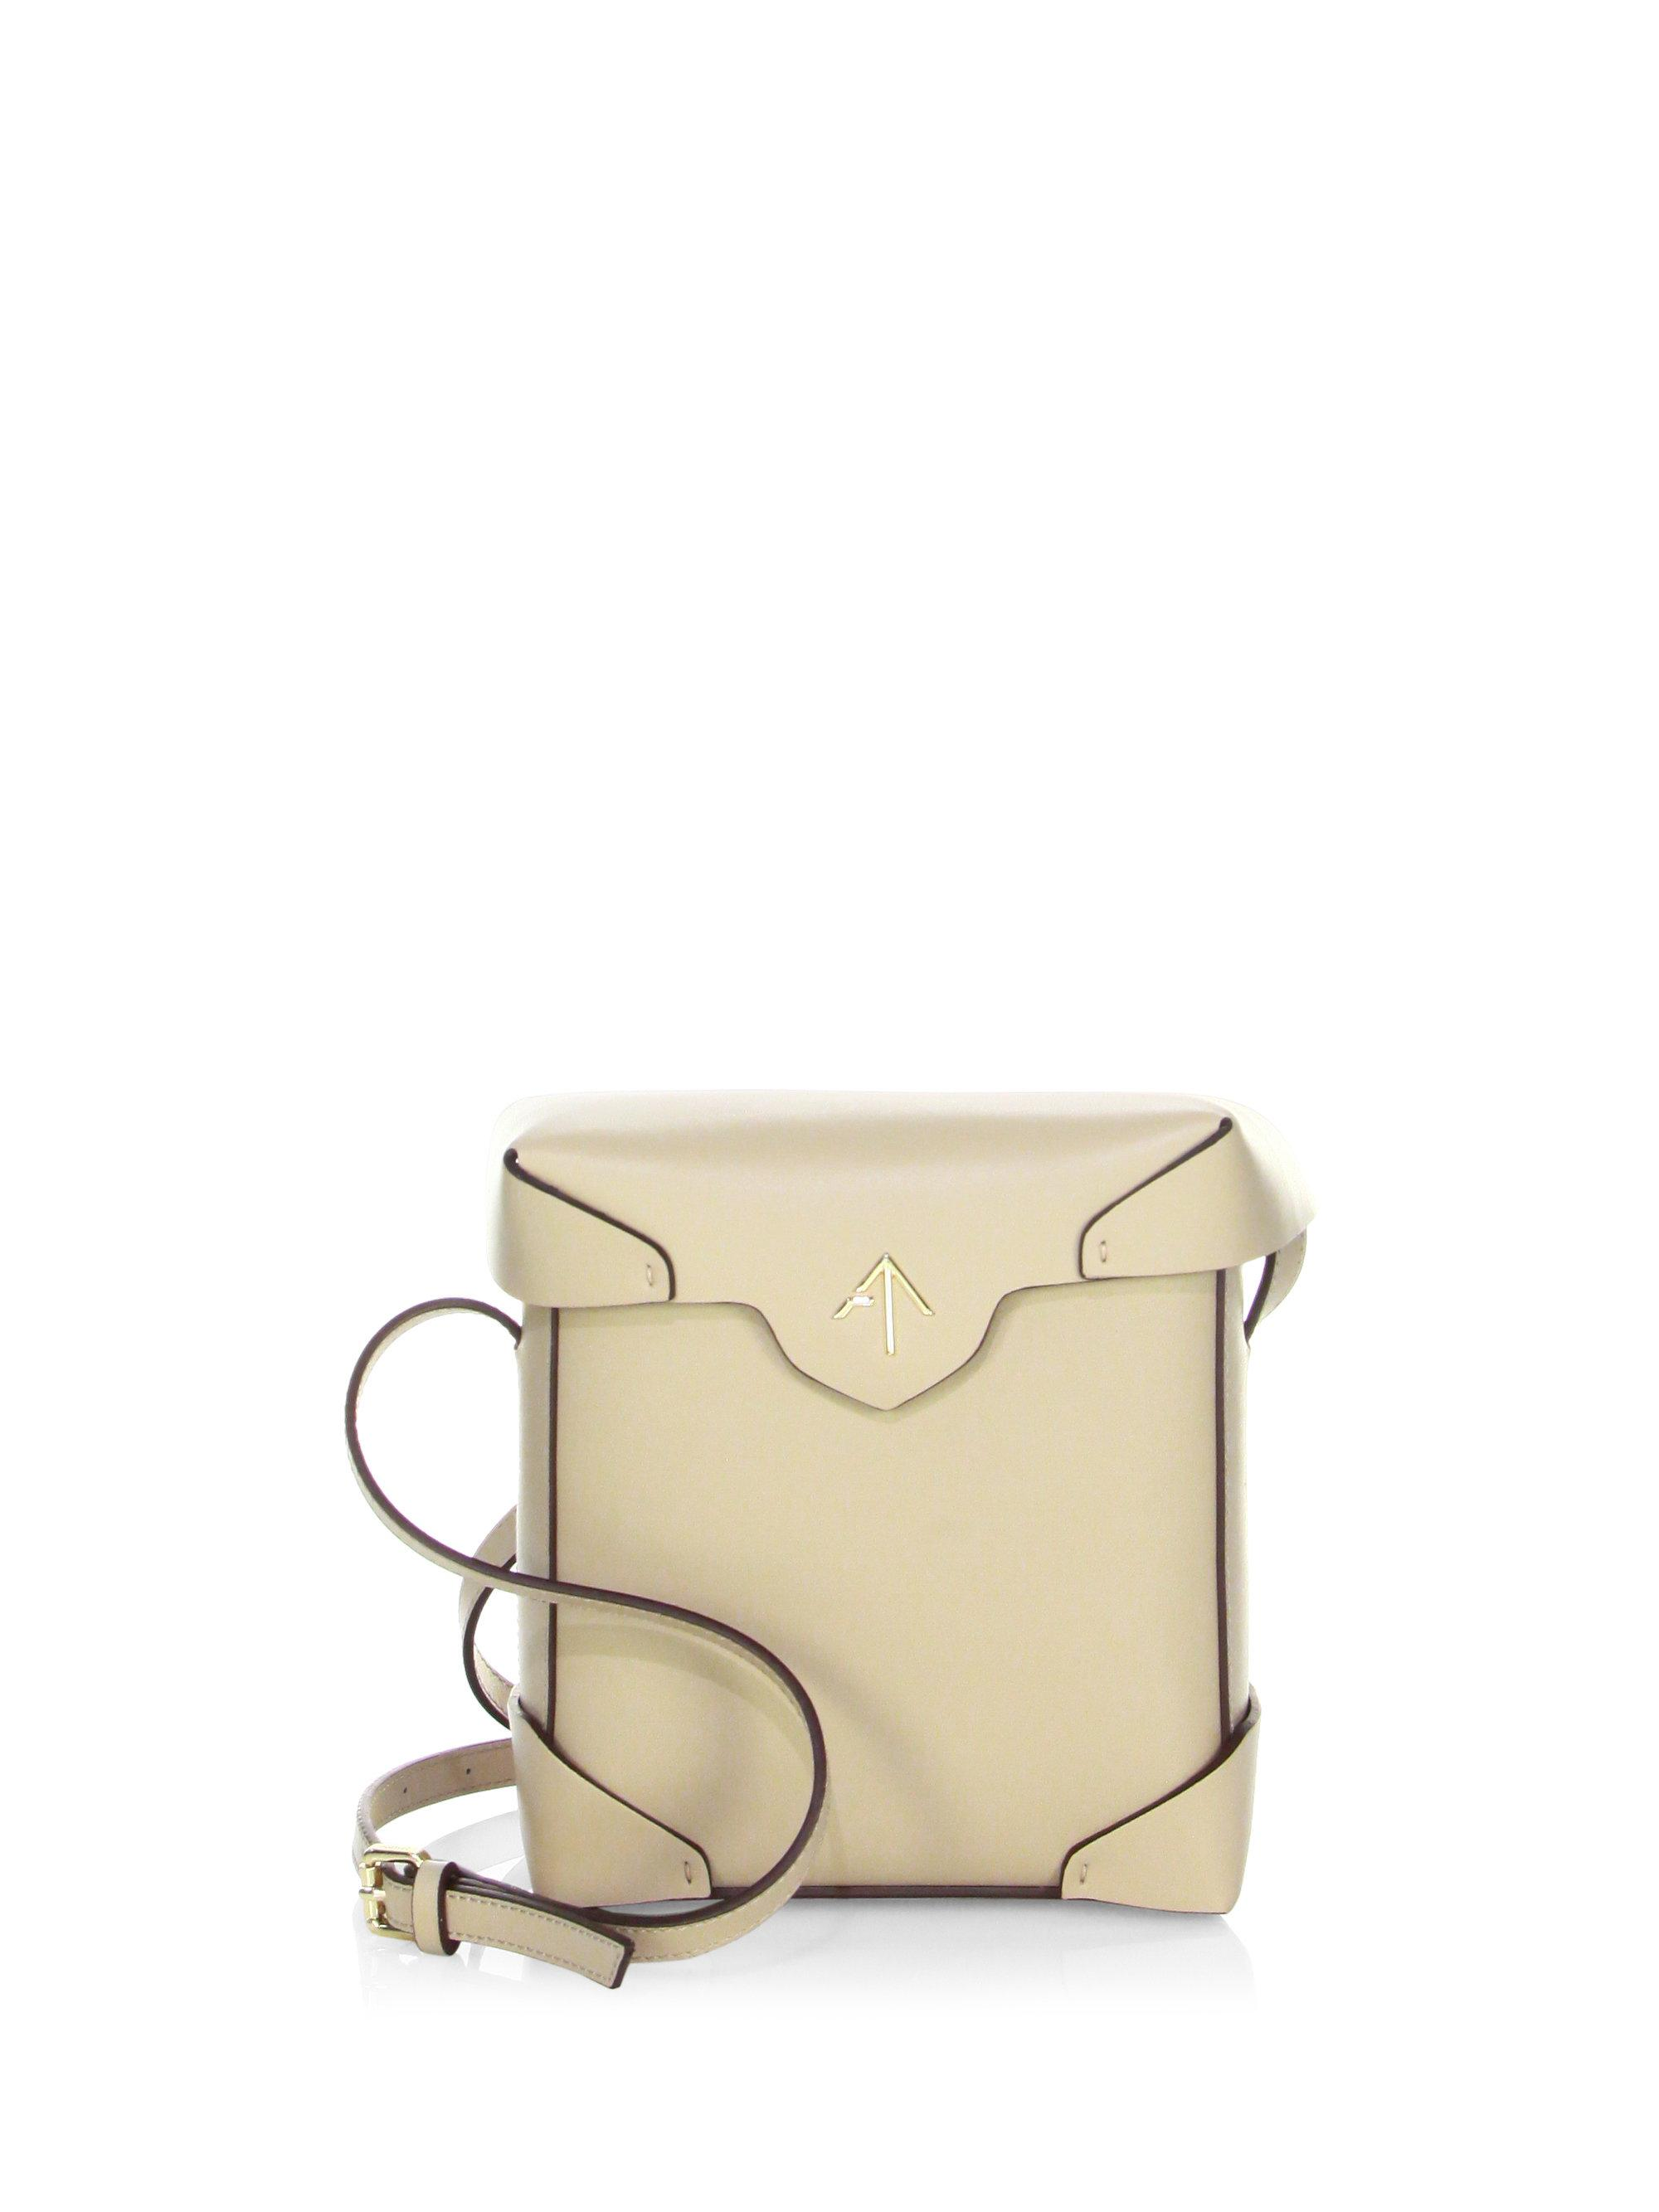 Manu Atelier Pre-owned - Leather crossbody bag 45Tb7i